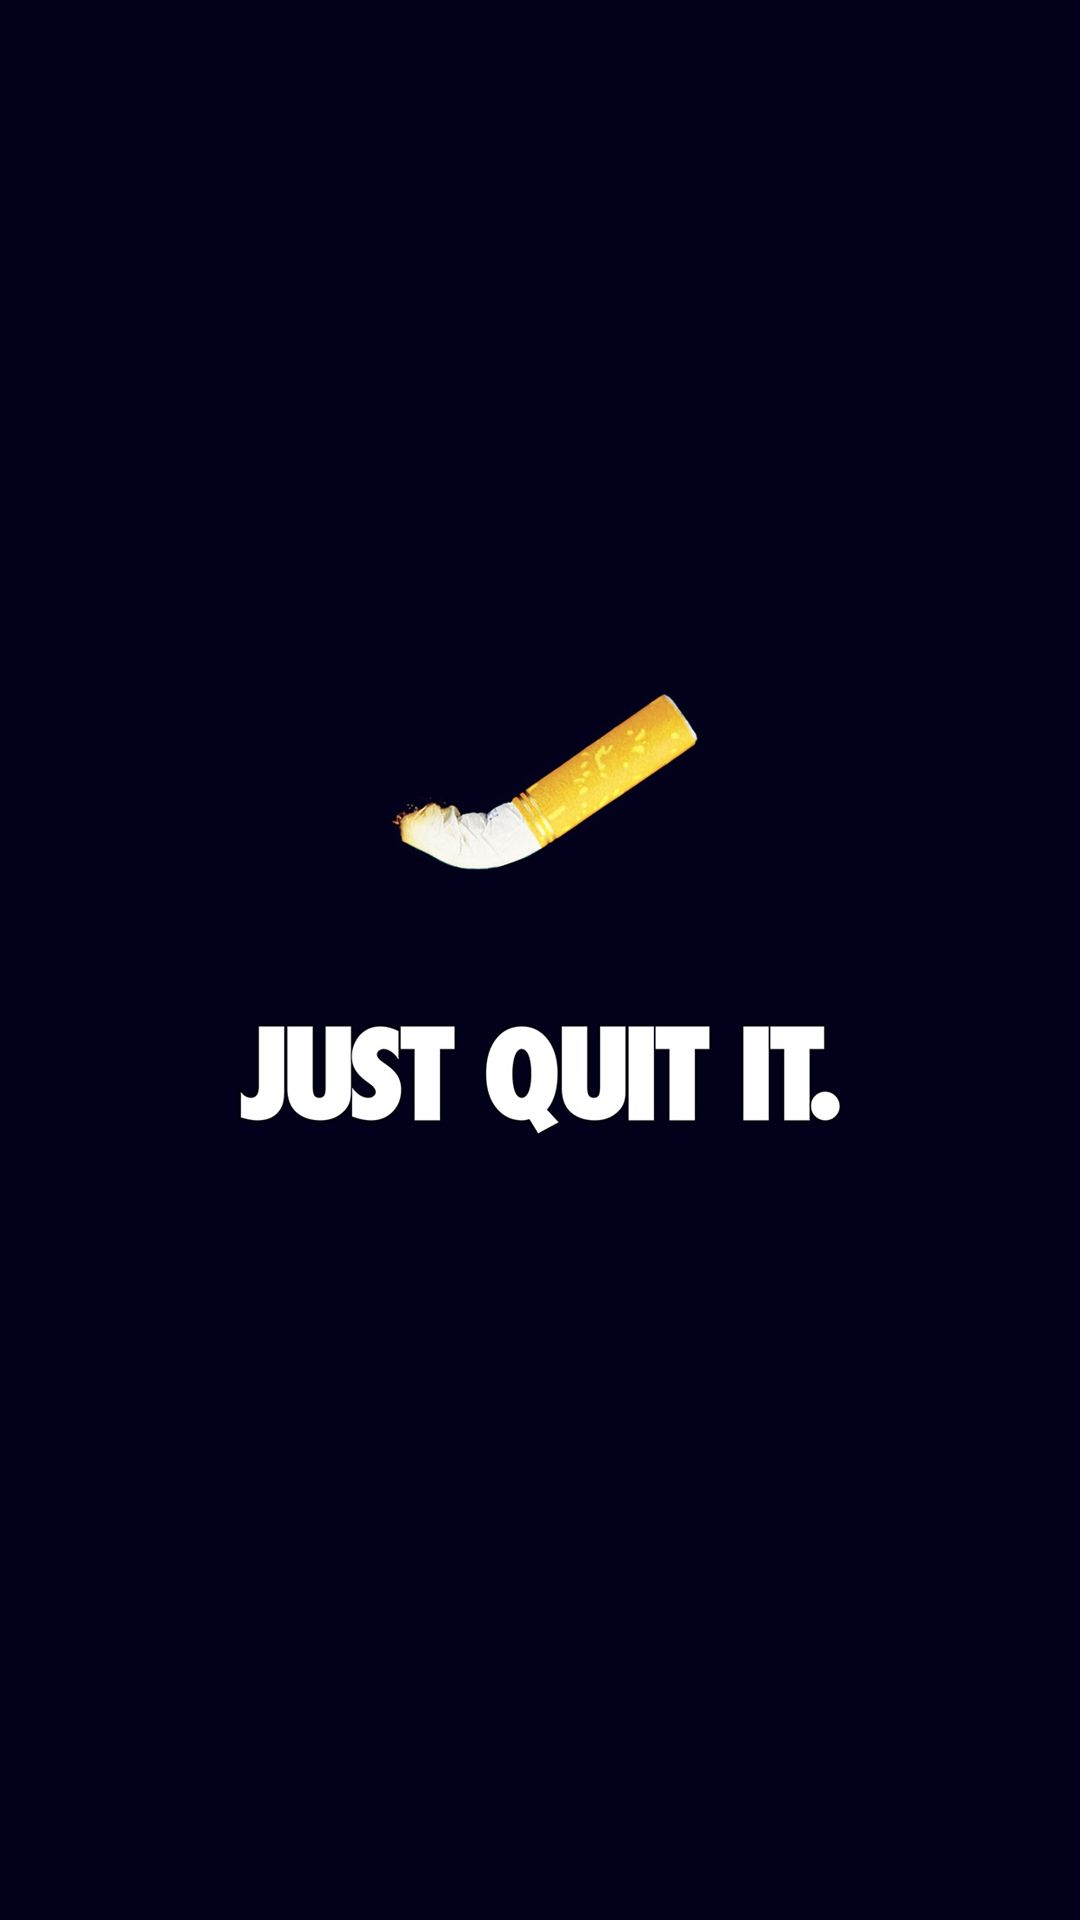 Just Quit It Nike Smoking Art Minimal Dark Blue #iPhone #6 #wallpaper